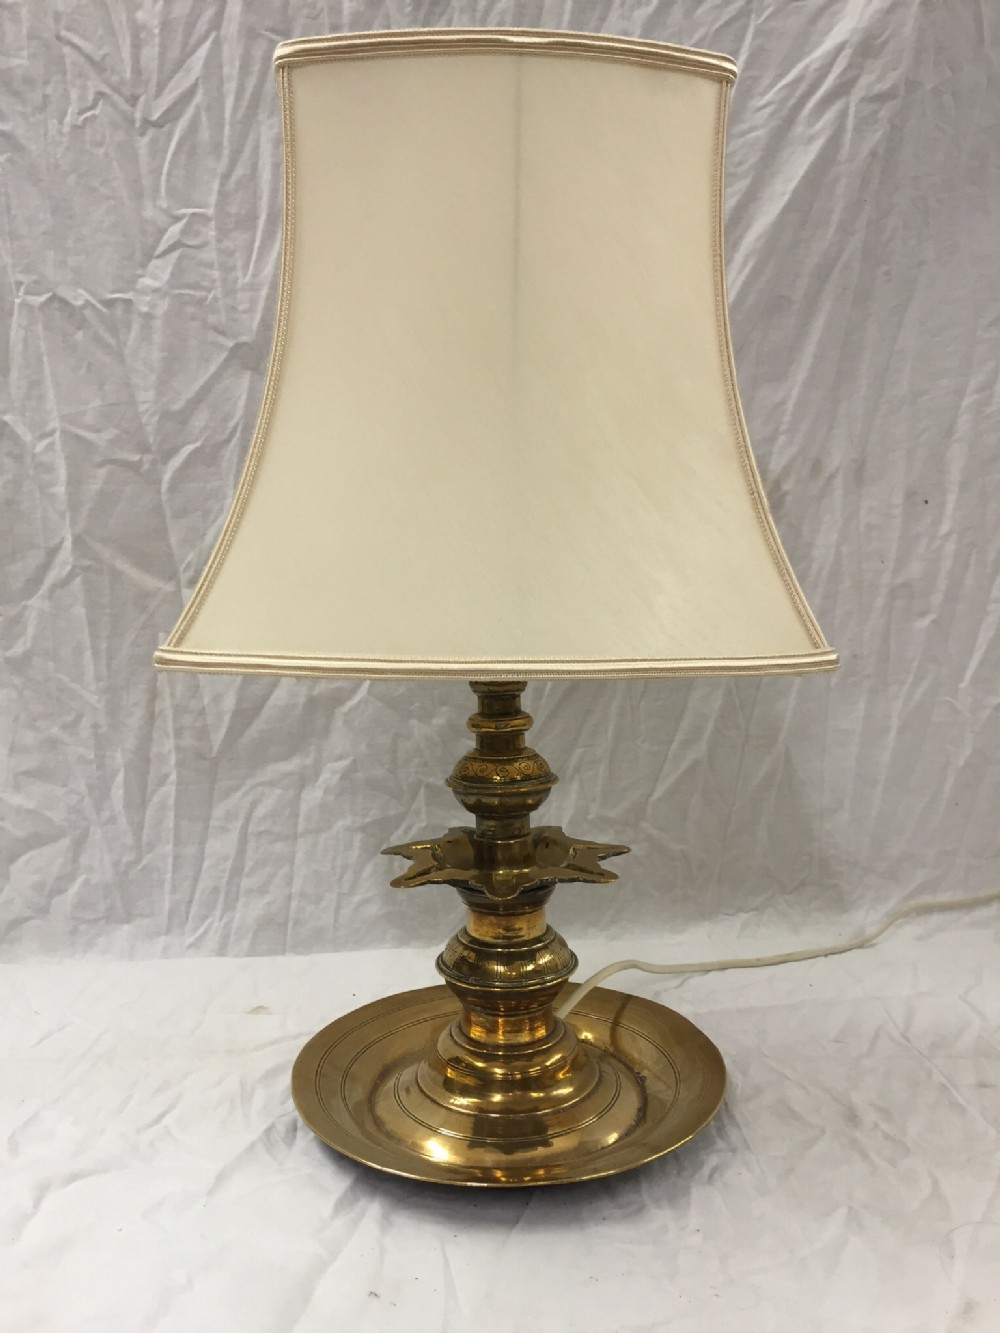 c18th indian candlestick lamp converted to table lamp